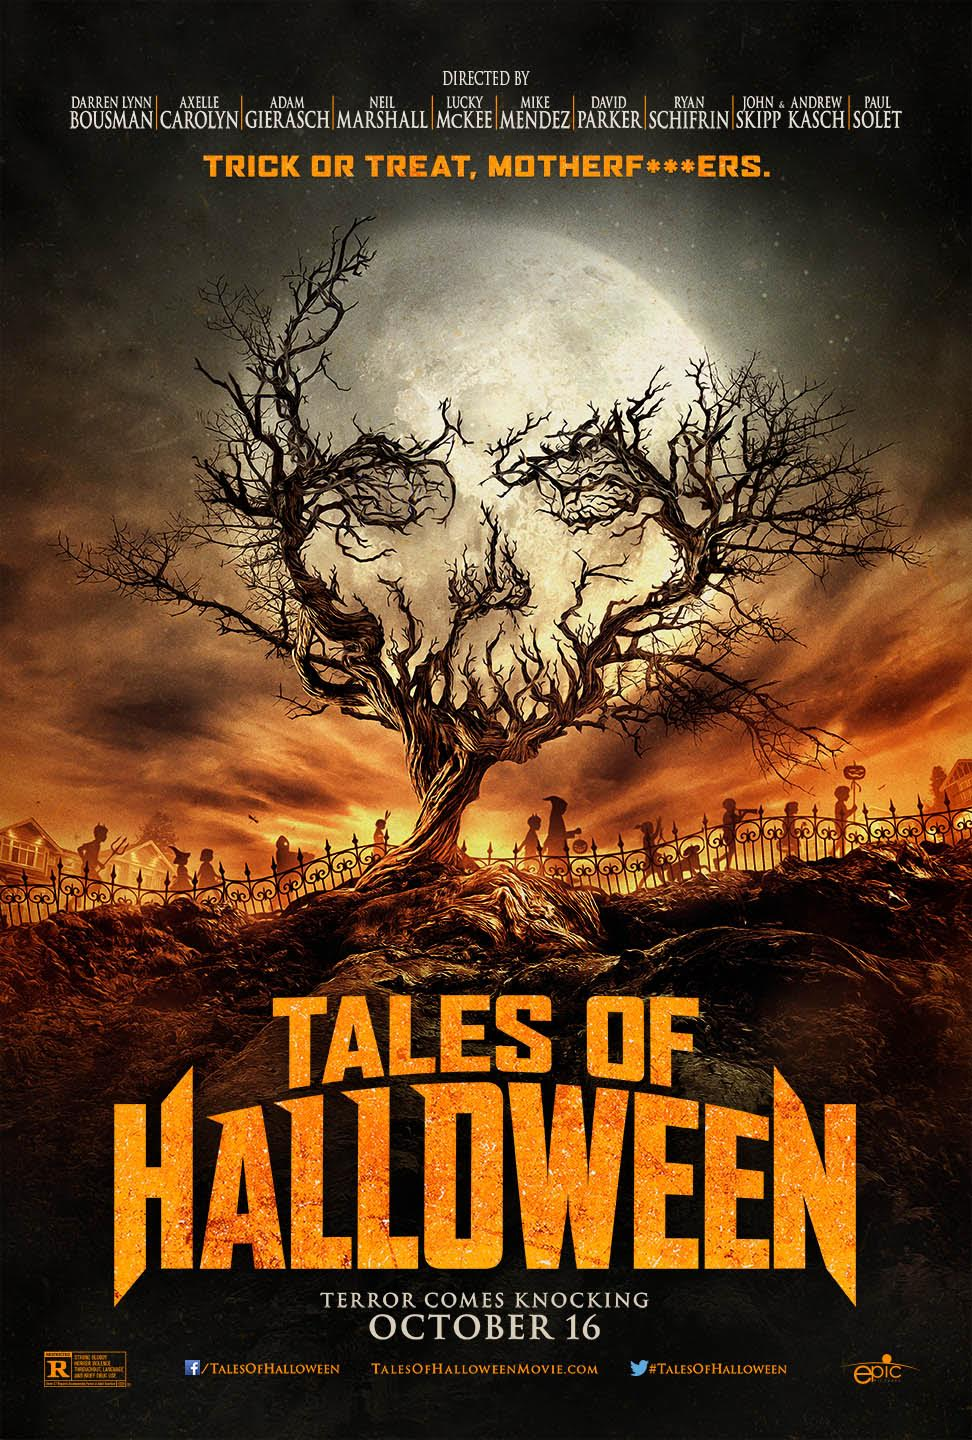 Tales Of Halloween film review: a ghoulish good time | SciFiNow - The ...